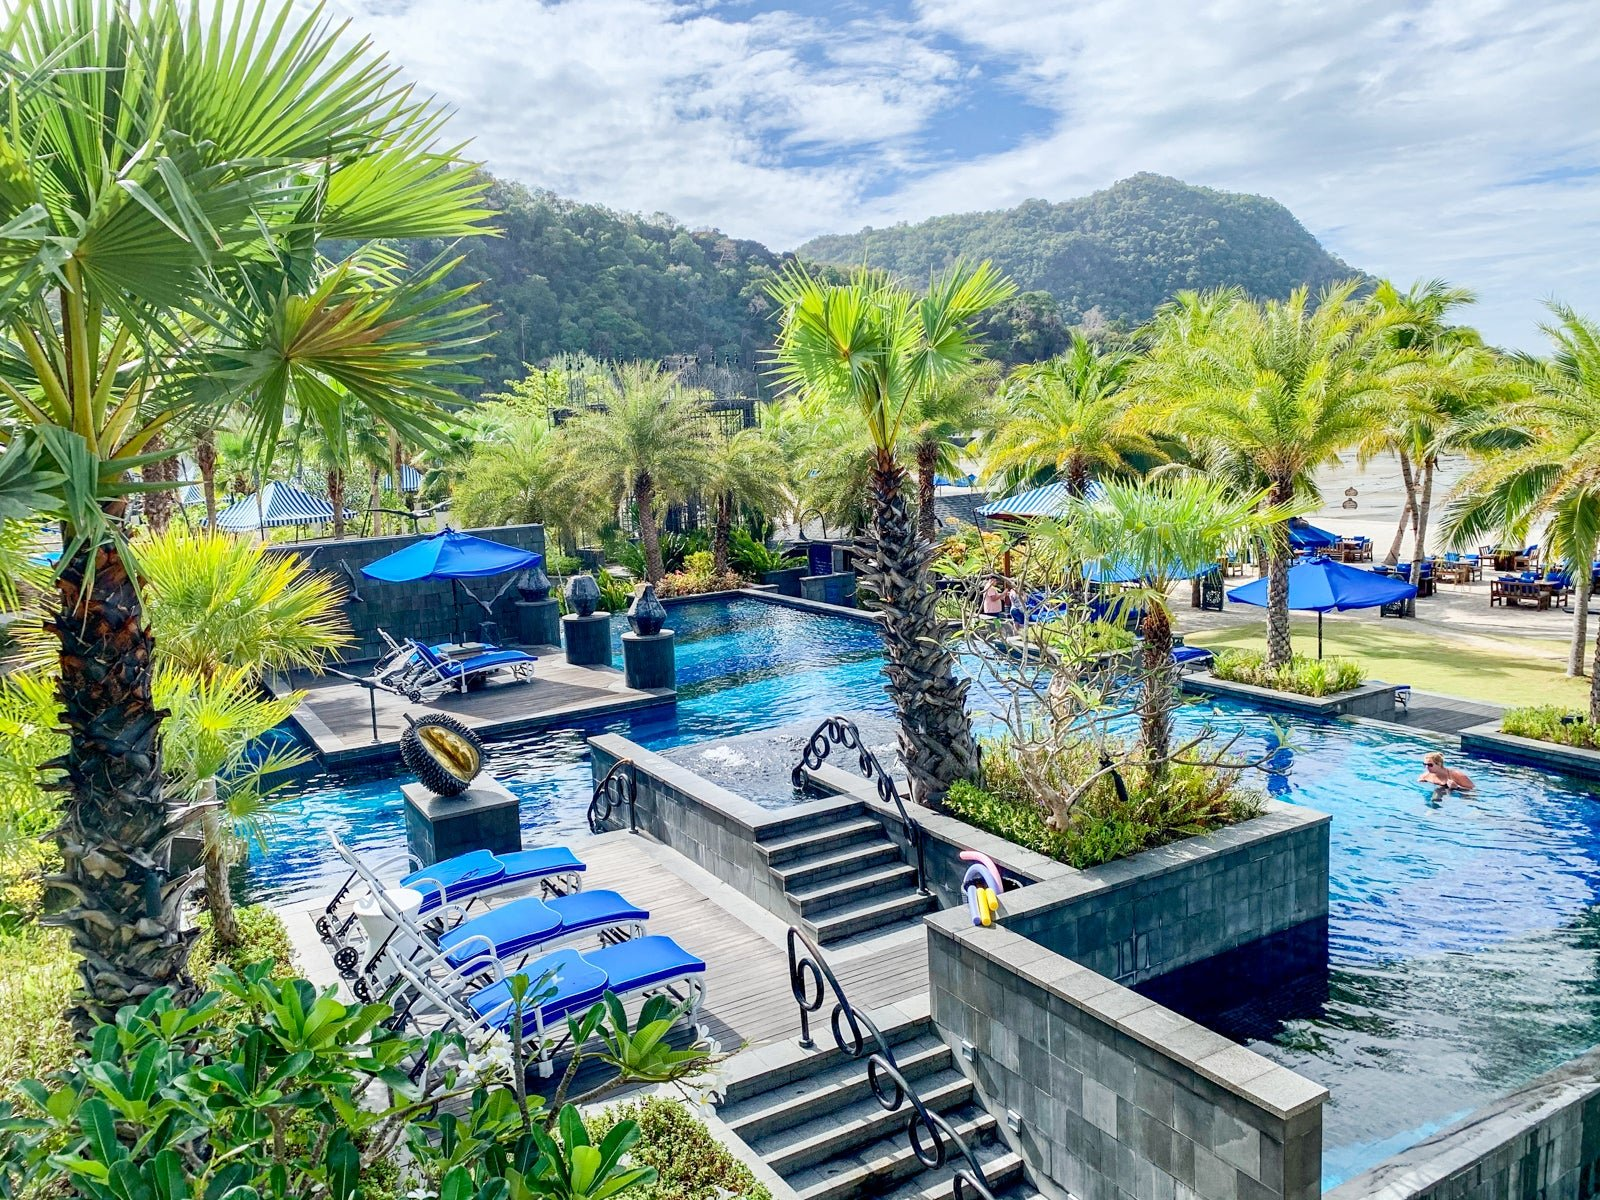 A stunning hotel with service to match: A review of The St. Regis Langkawi in Malaysia